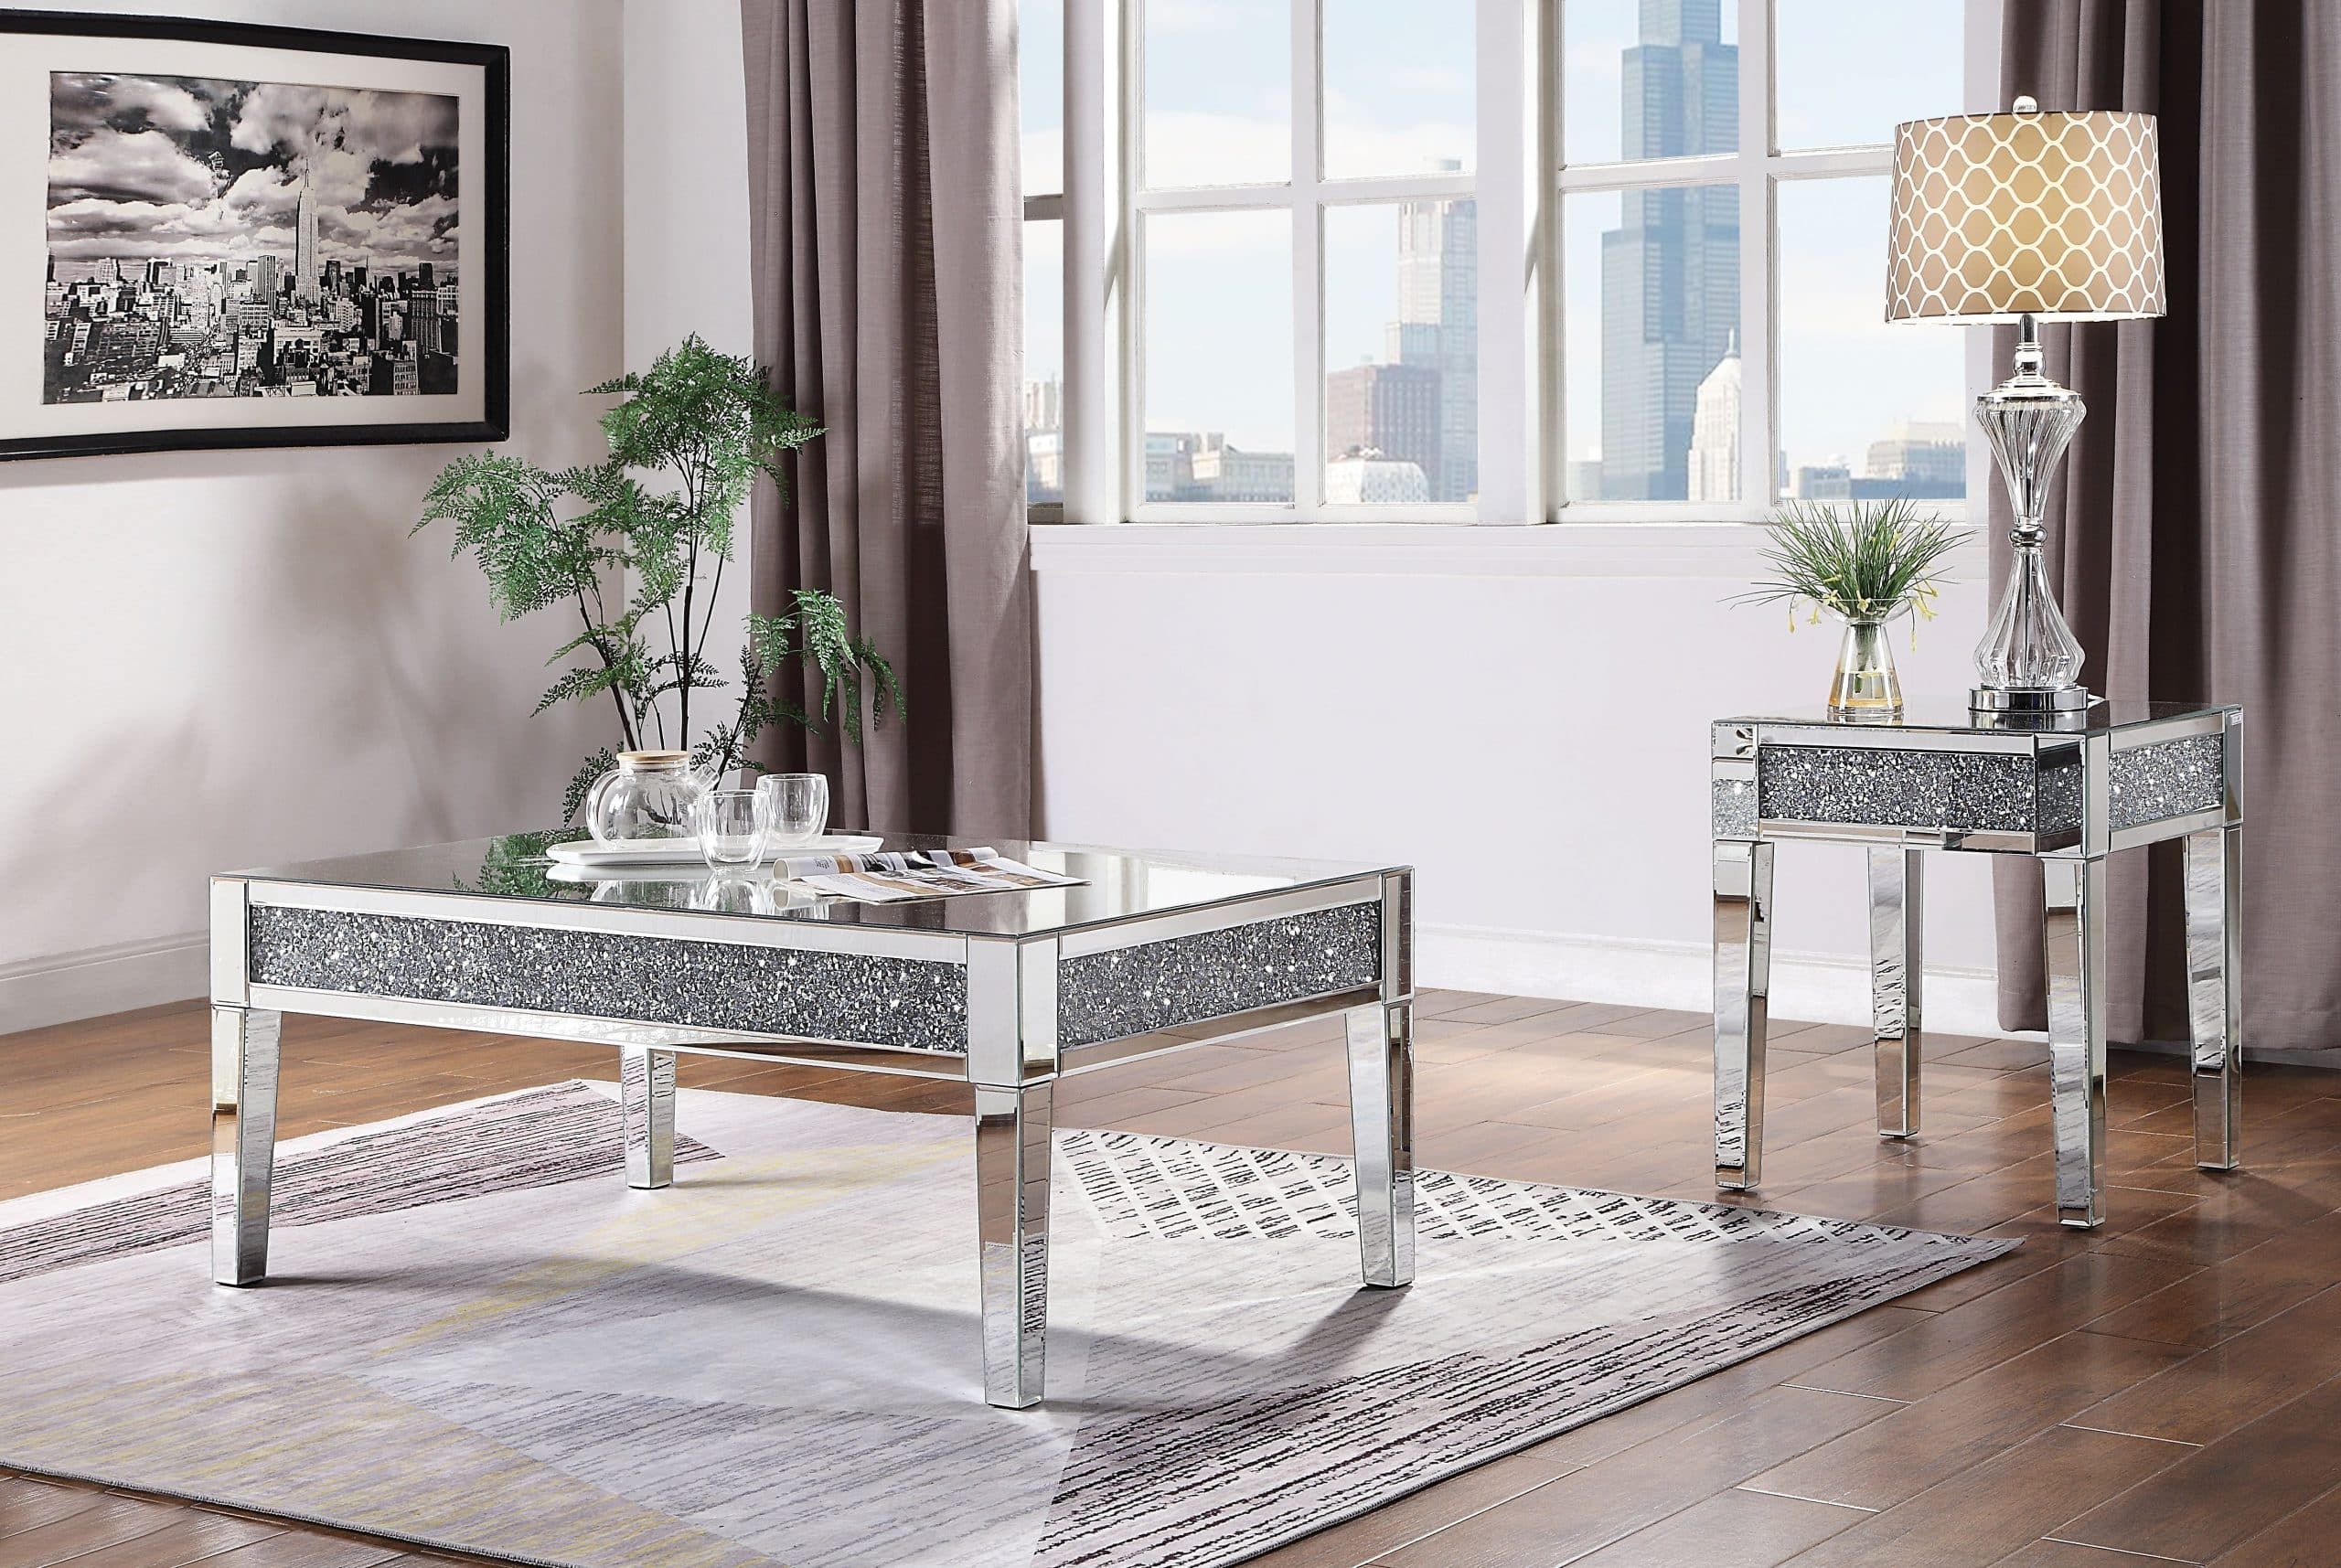 Nysa Mirrored Tables With Crystal Top Kfrooms Mirrored Modern Coffee Table